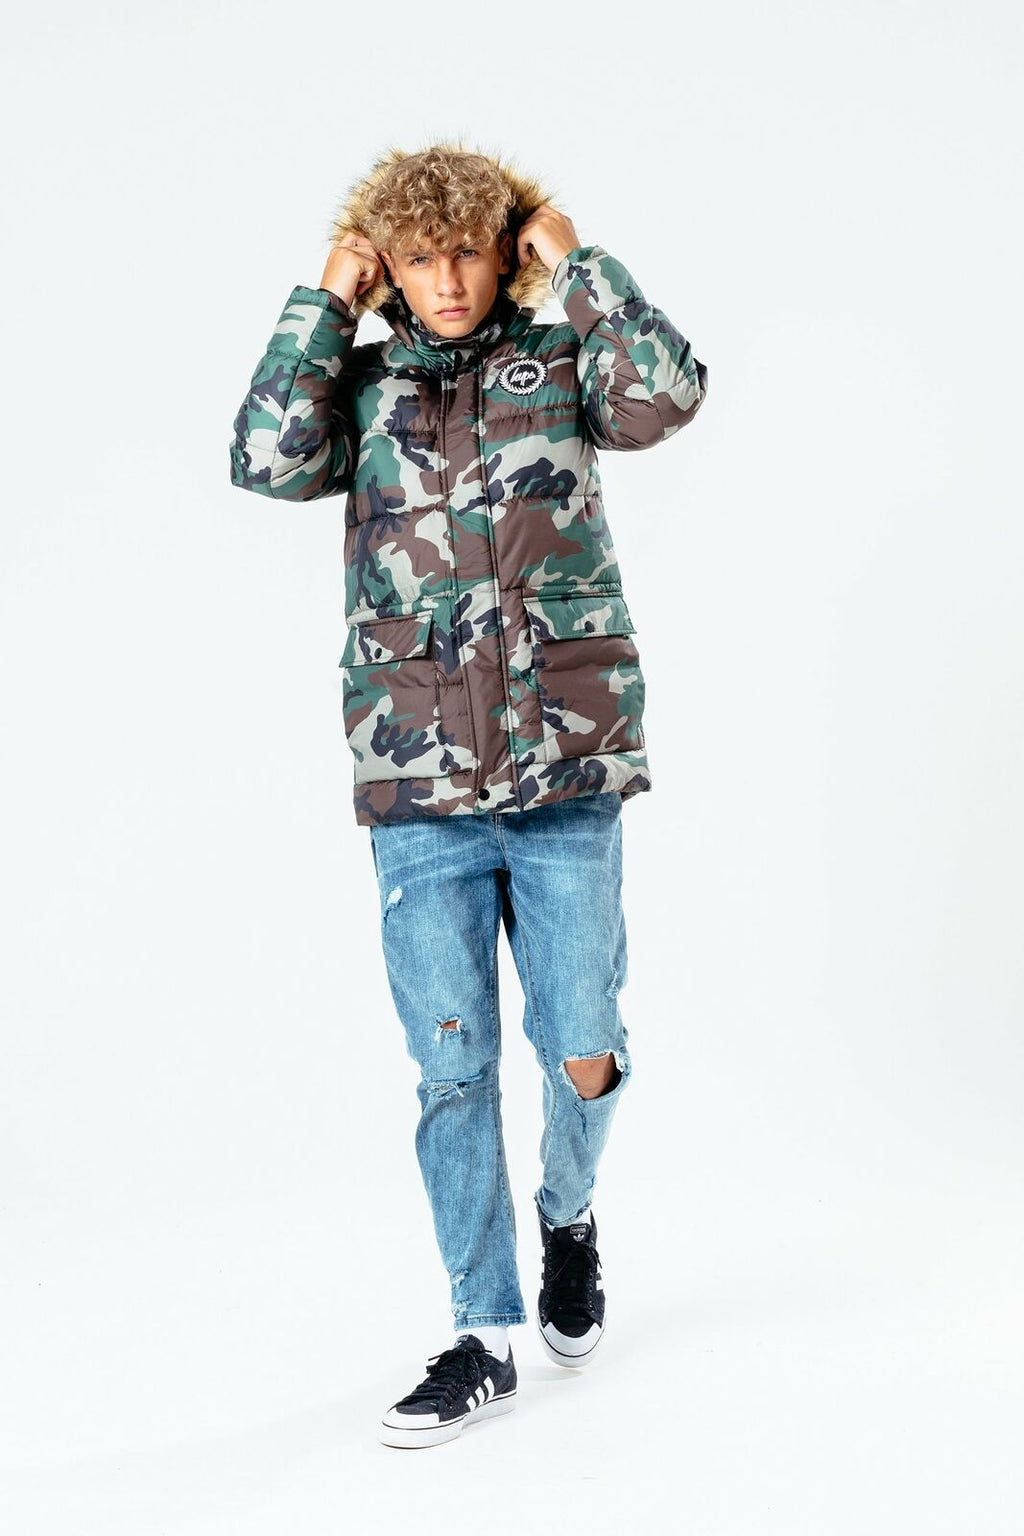 Camo Kids Explorer Jacket - Khaki